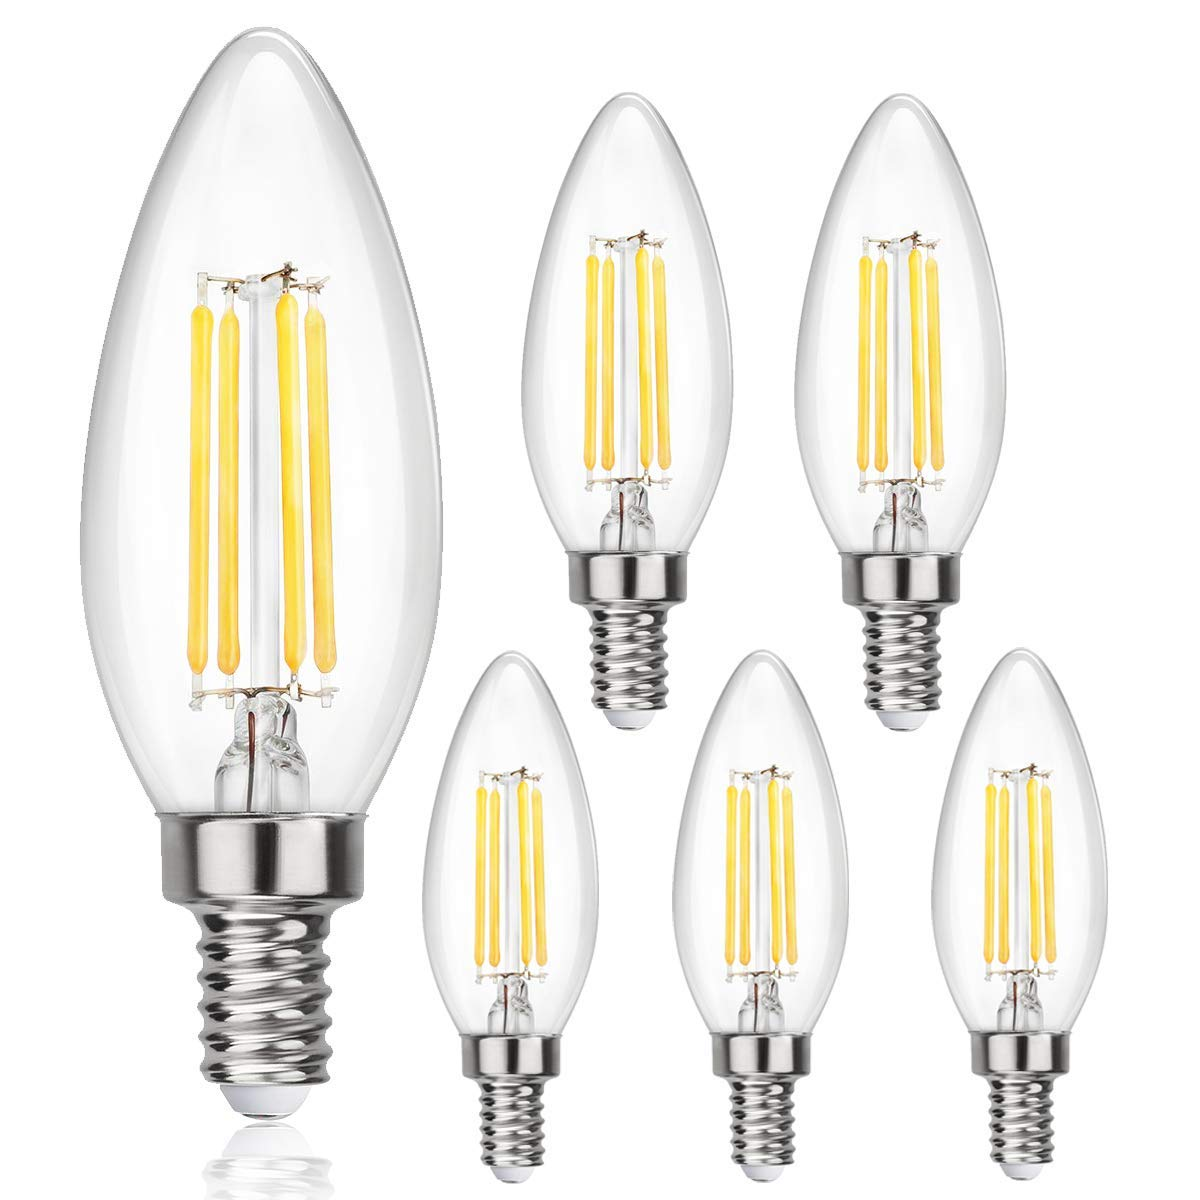 Microwave Light Bulb Replacement